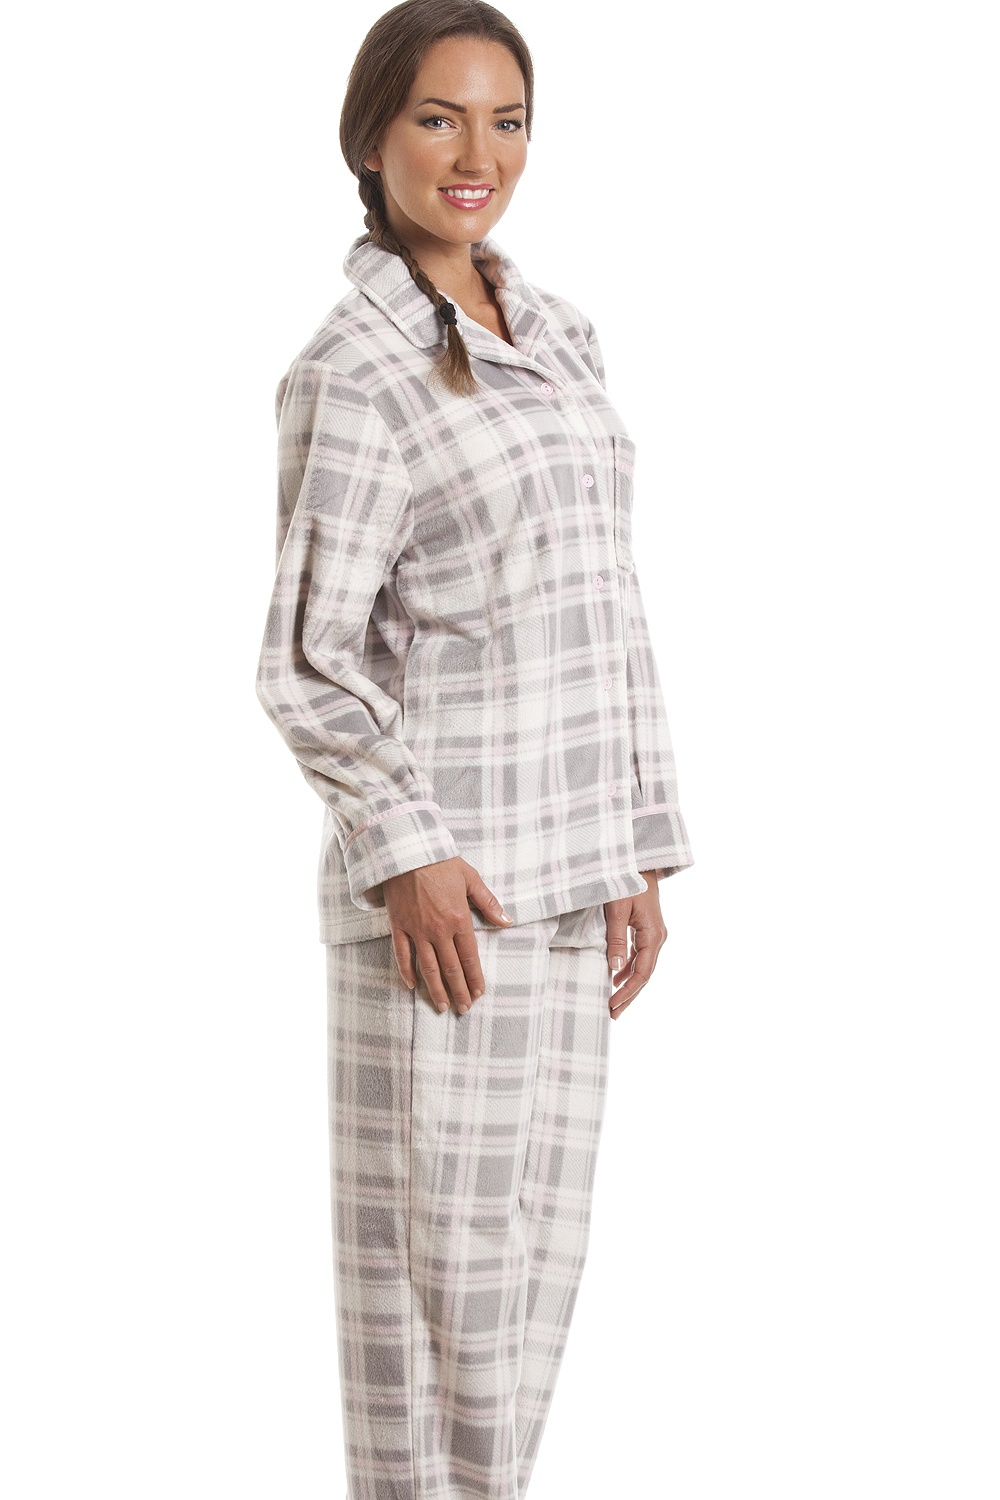 Take your pick from pyjama sets in a wide range of colours and styles that will make you long for a duvet day. Choose from cute pure cotton trouser bottoms and matching tops for an evening of enjoyable lounging or, really cosy up with our collection of unbeatably soft fleece pyjamas.